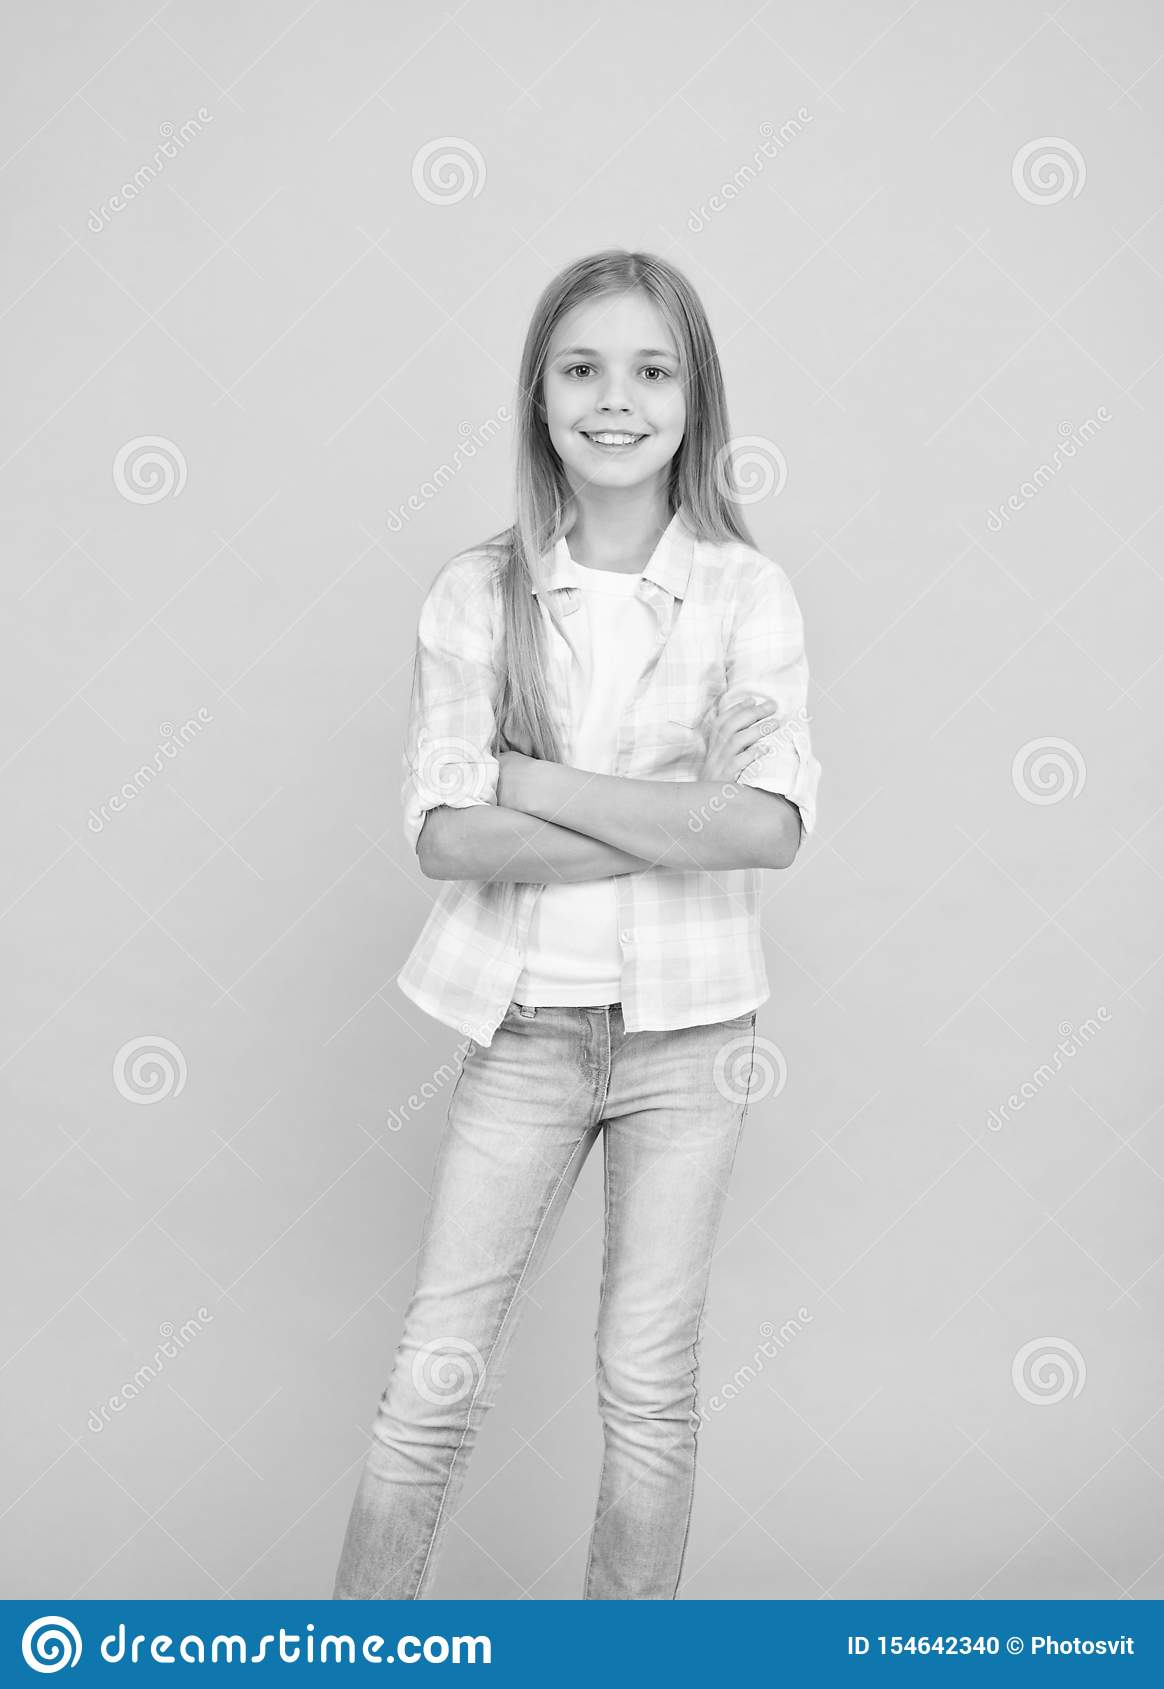 Being used to model clothes. Small child wearing casual style. Fashionable little girl child. Little girl with long